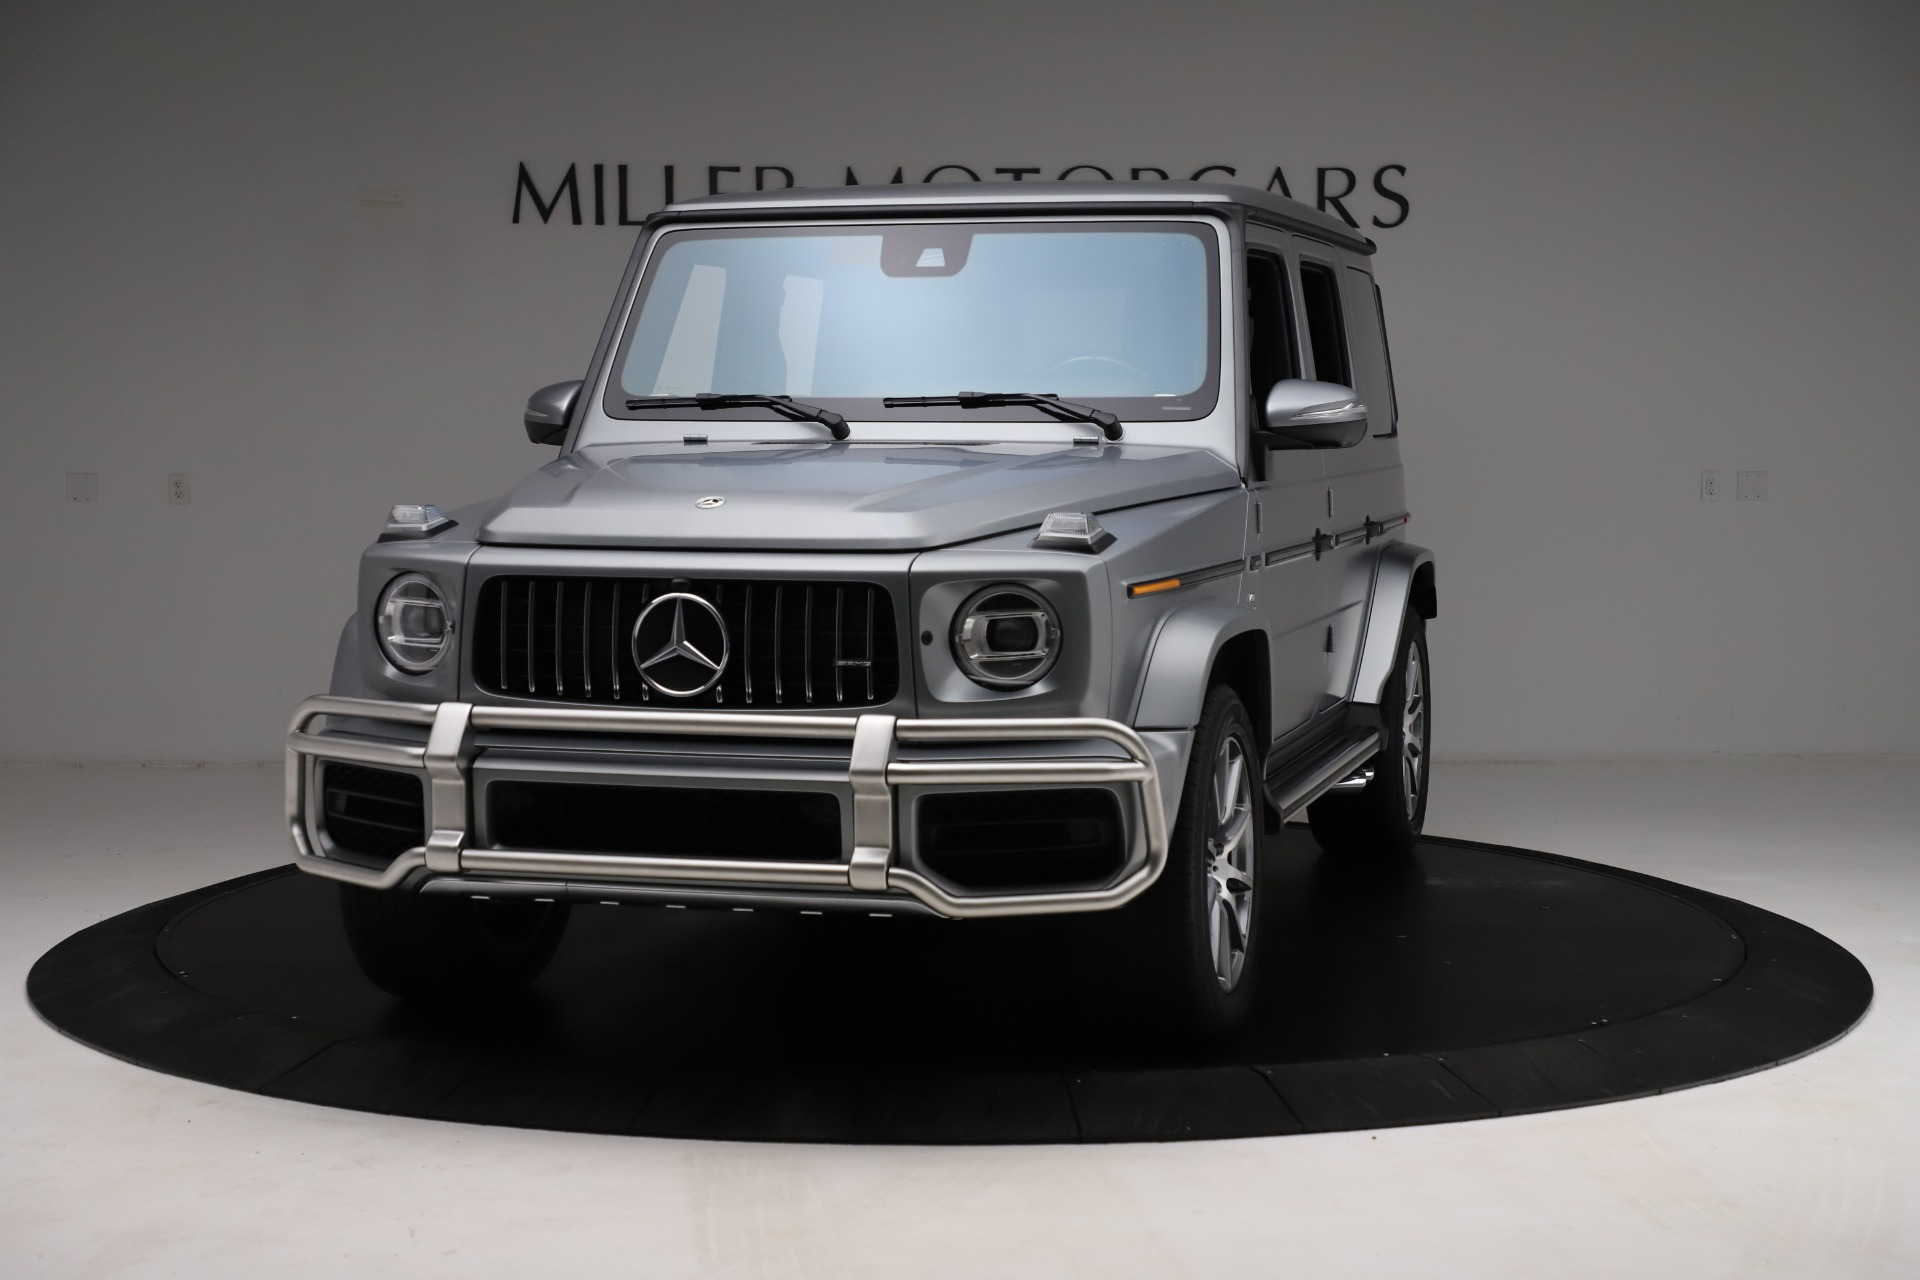 Used 2021 Mercedes-Benz G-Class AMG G 63 for sale $219,900 at Maserati of Westport in Westport CT 06880 1